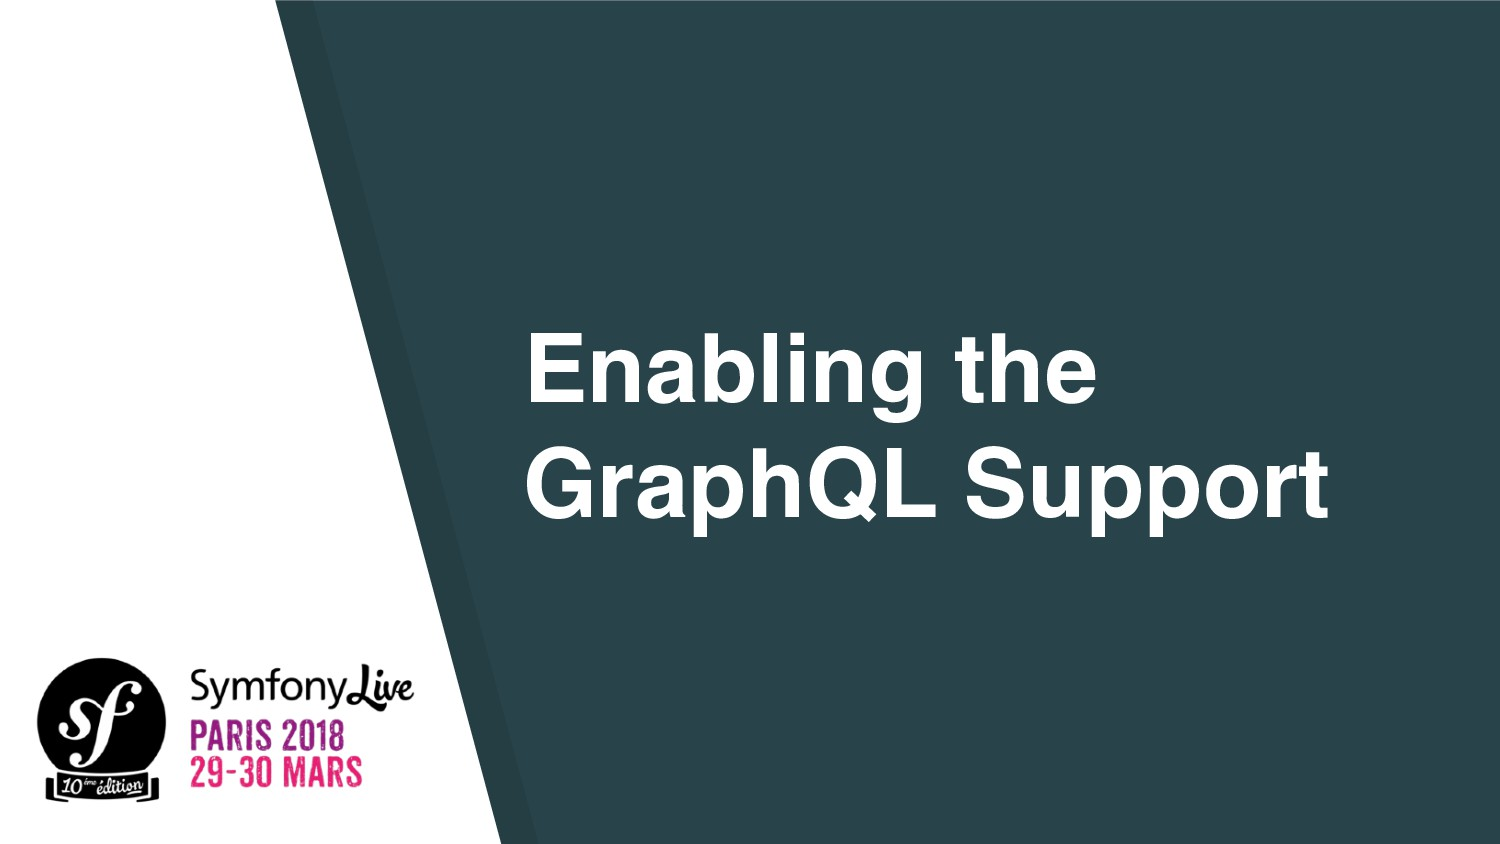 Enabling the GraphQL Support